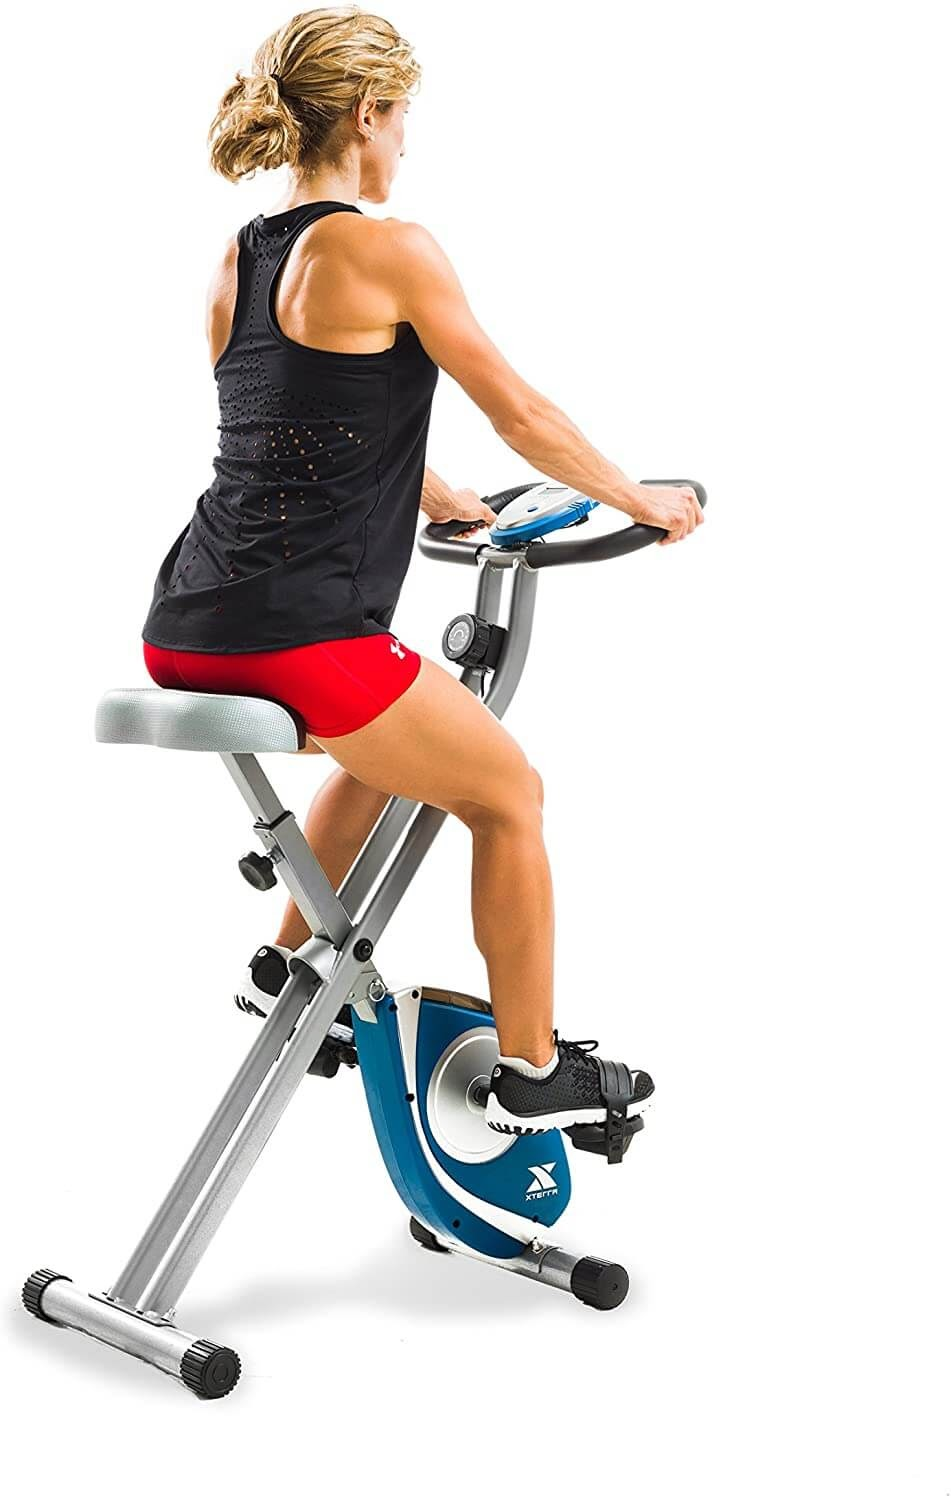 Woman from behind on exercise bike.